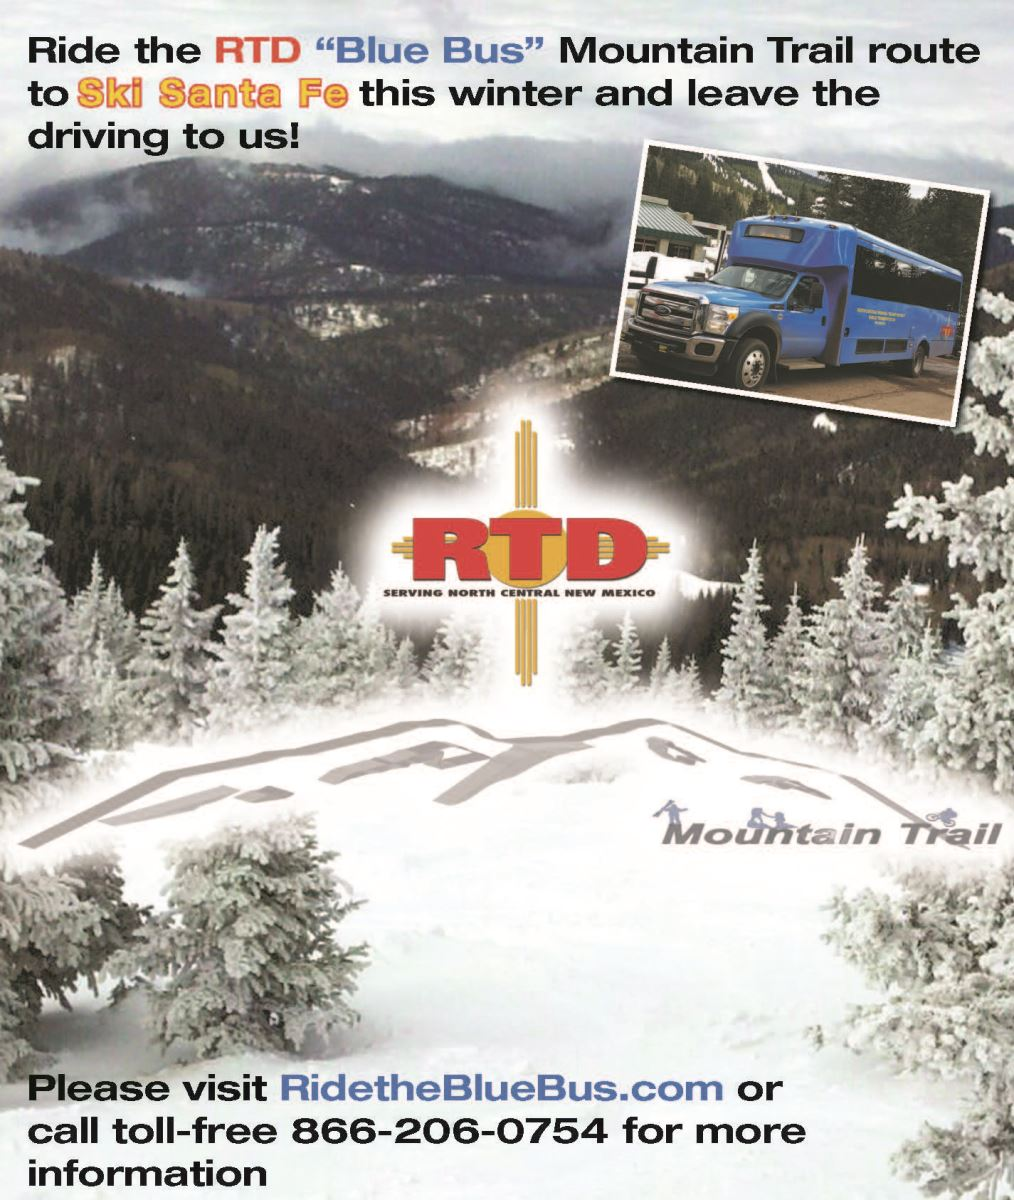 Ride the RTD Blue Bus Mountain Trail route to Ski Santa Fe this winter and leave the driving to us! Please visit Ridethebluebus.com or call toll-free 866-206-0754 for more information.